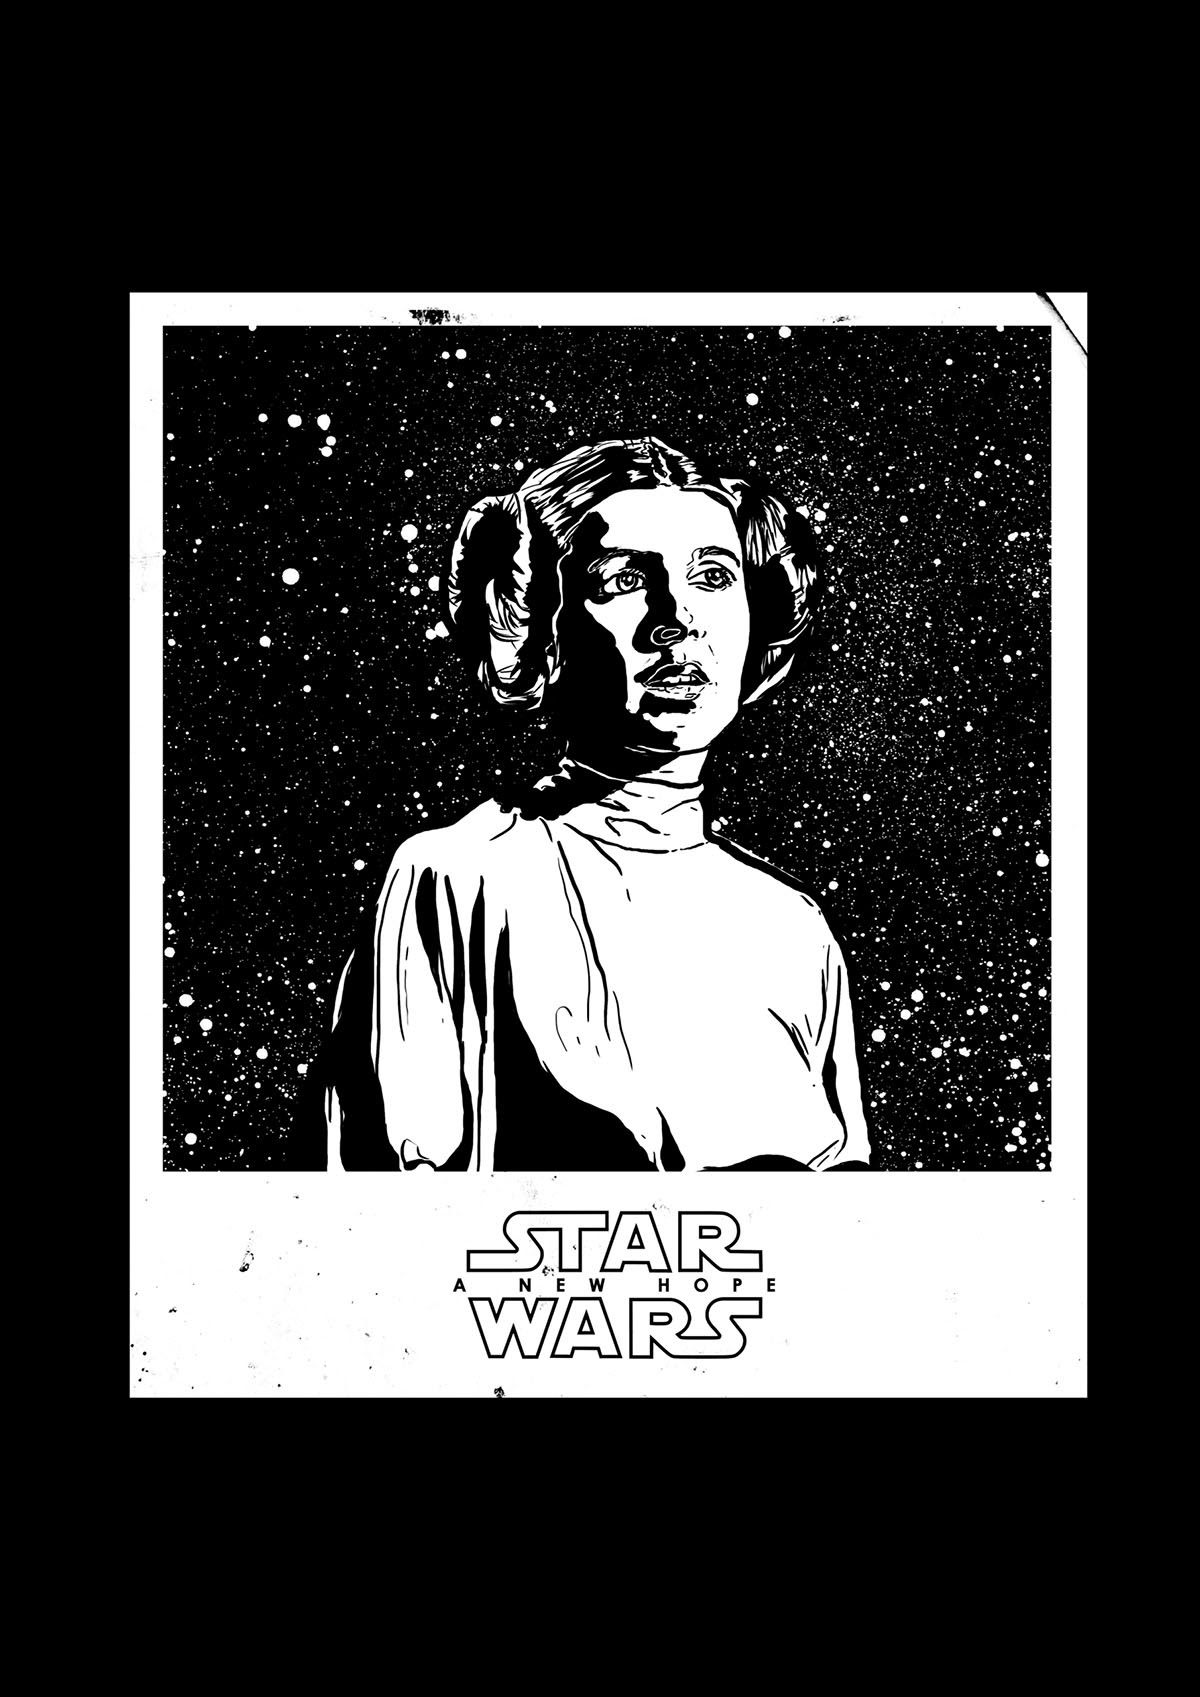 stylized portrait of princess leia